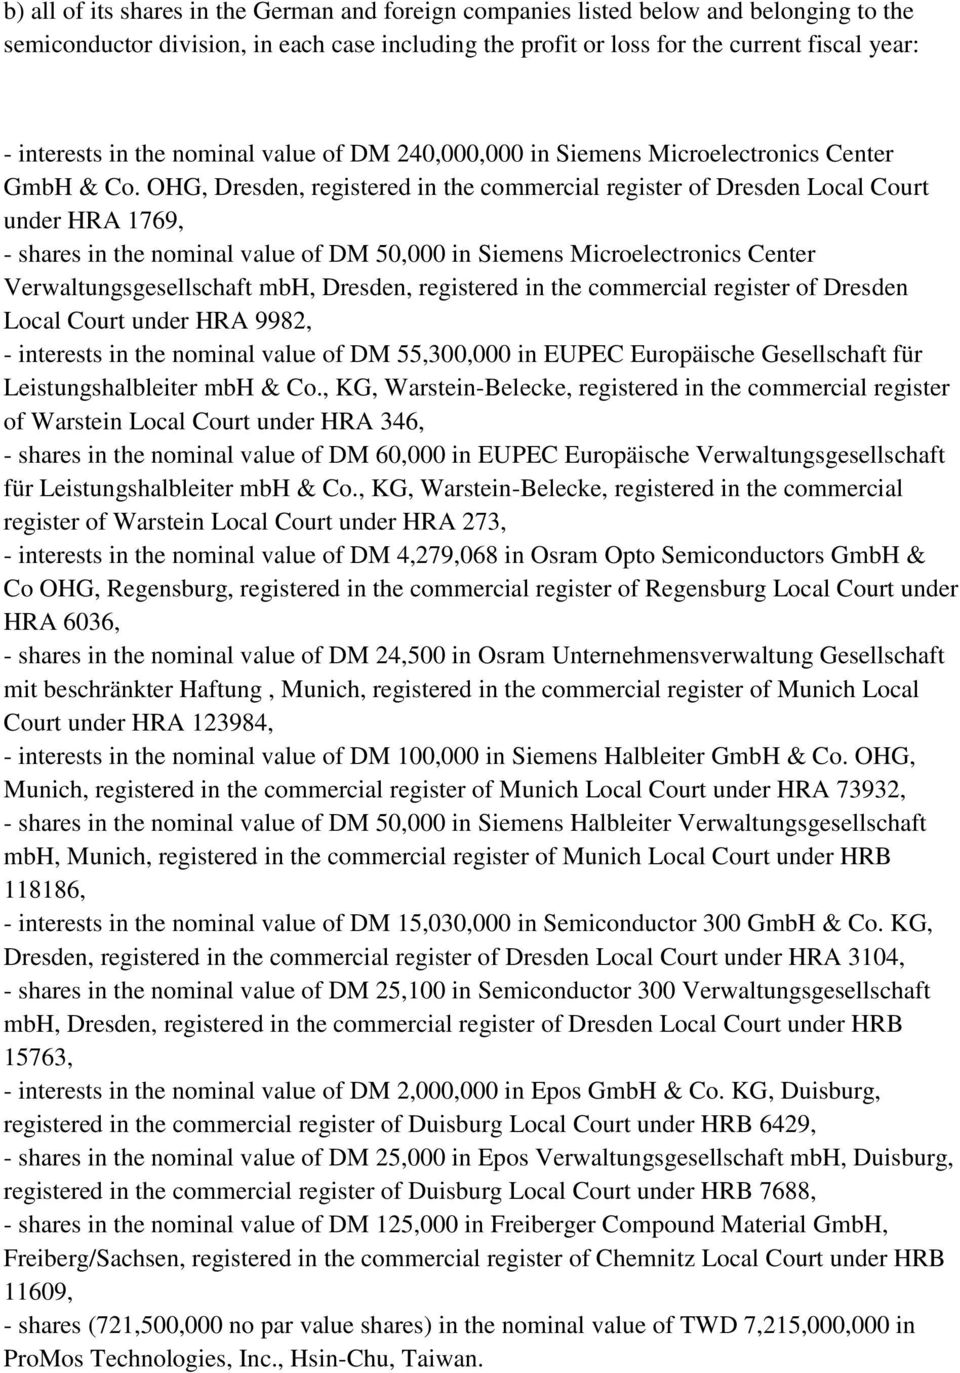 OHG, Dresden, registered in the commercial register of Dresden Local Court under HRA 1769, - shares in the nominal value of DM 50,000 in Siemens Microelectronics Center Verwaltungsgesellschaft mbh,